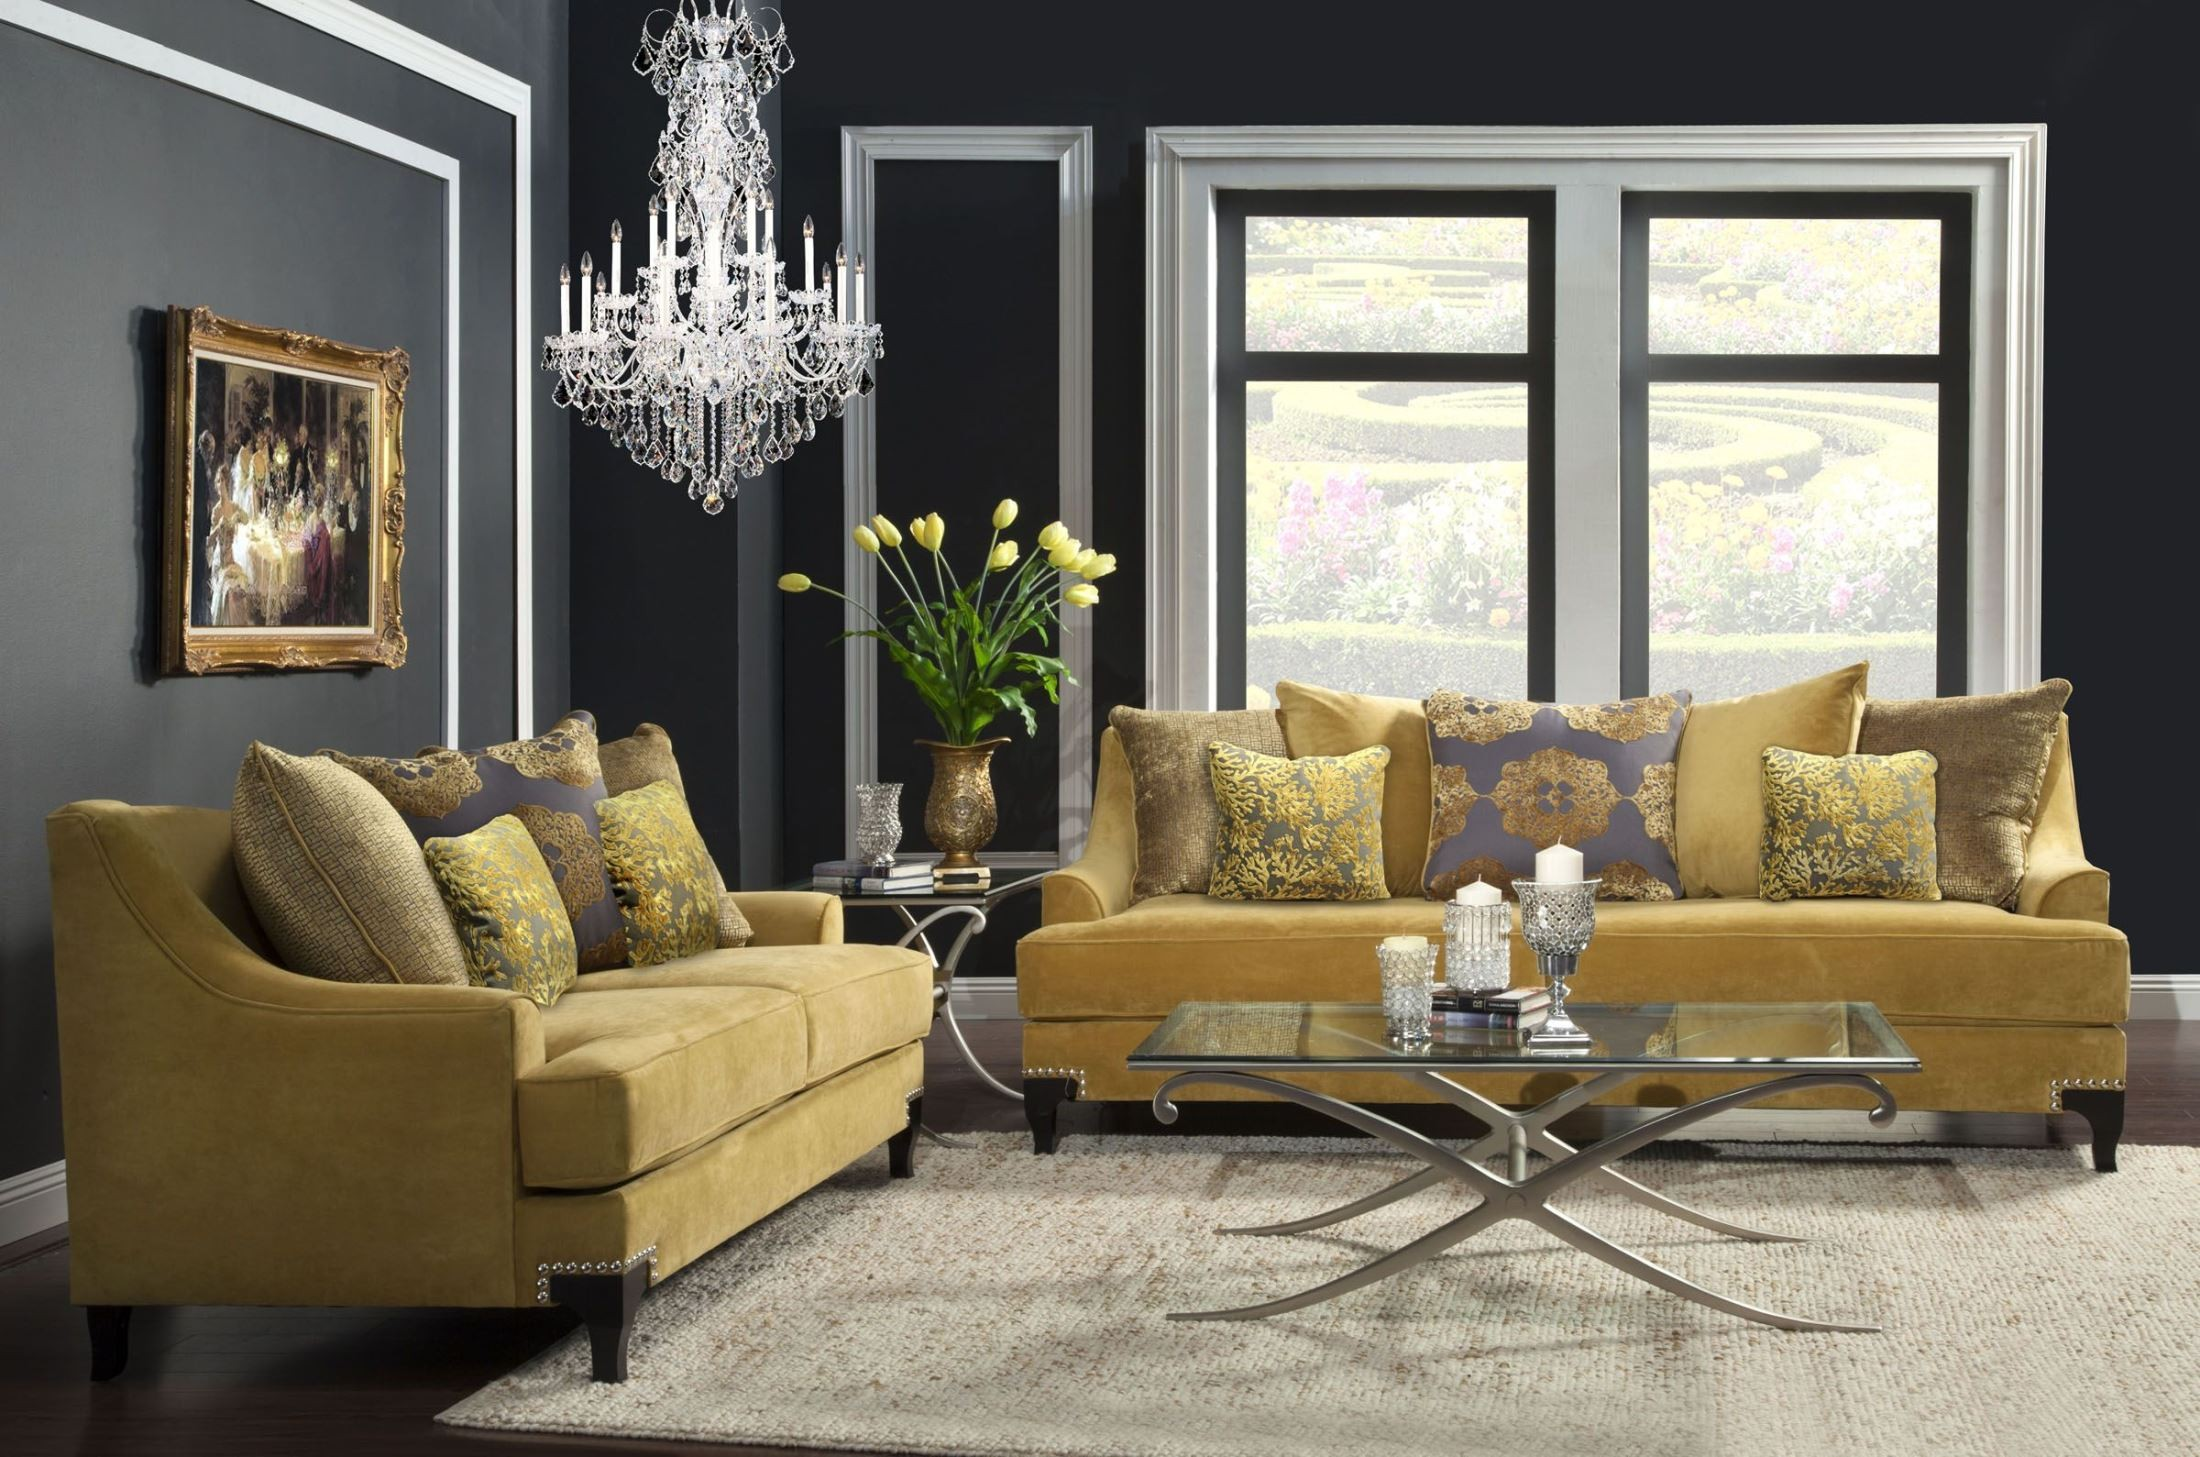 Viscontti gold living room set from furniture of america sm2201 sf coleman furniture Gold accessories for living room